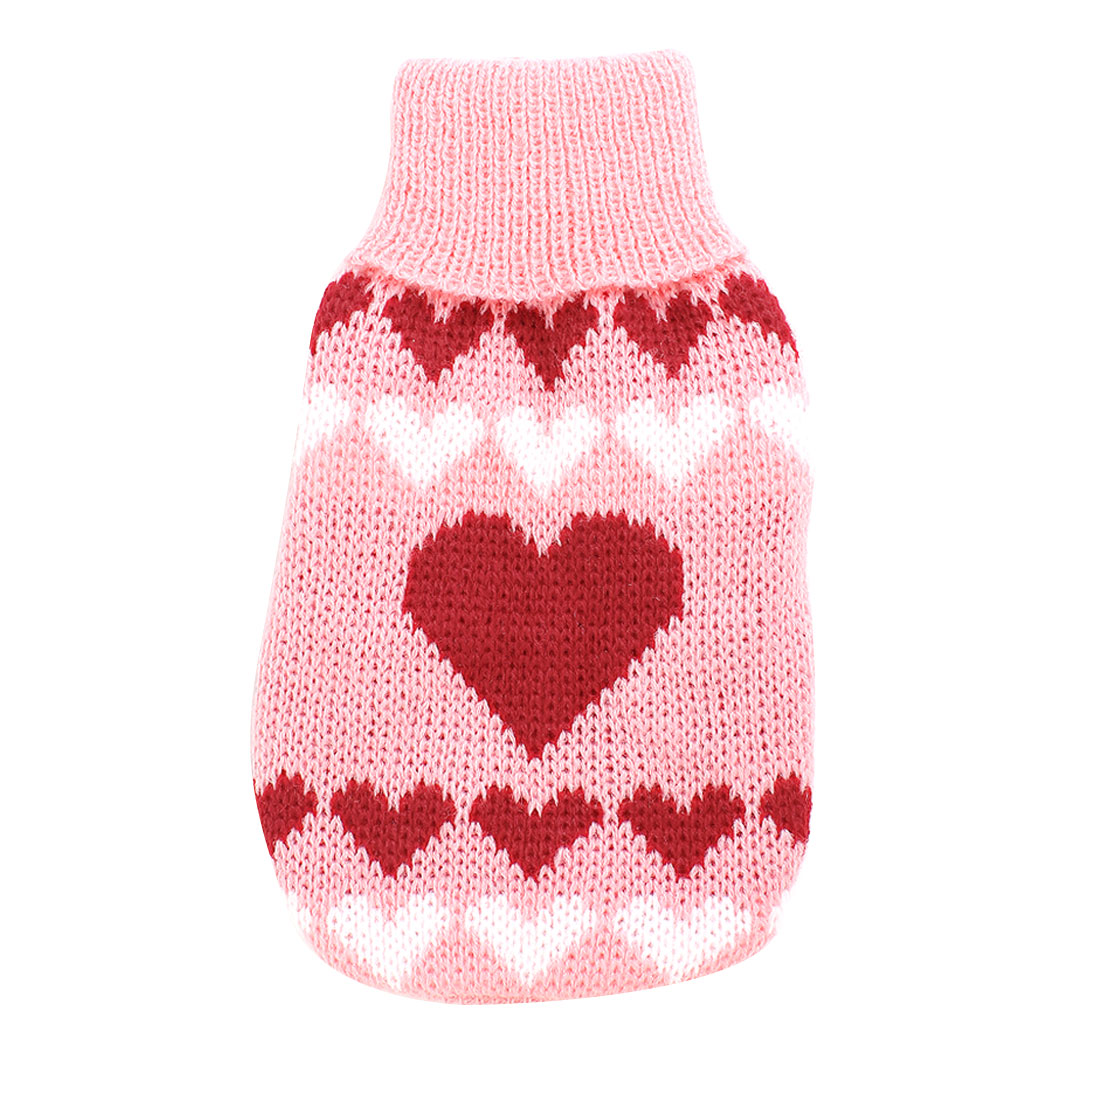 Stylish Turtleneck Pet Puppy Dog Sweater Apparel Size XXS Pink Red